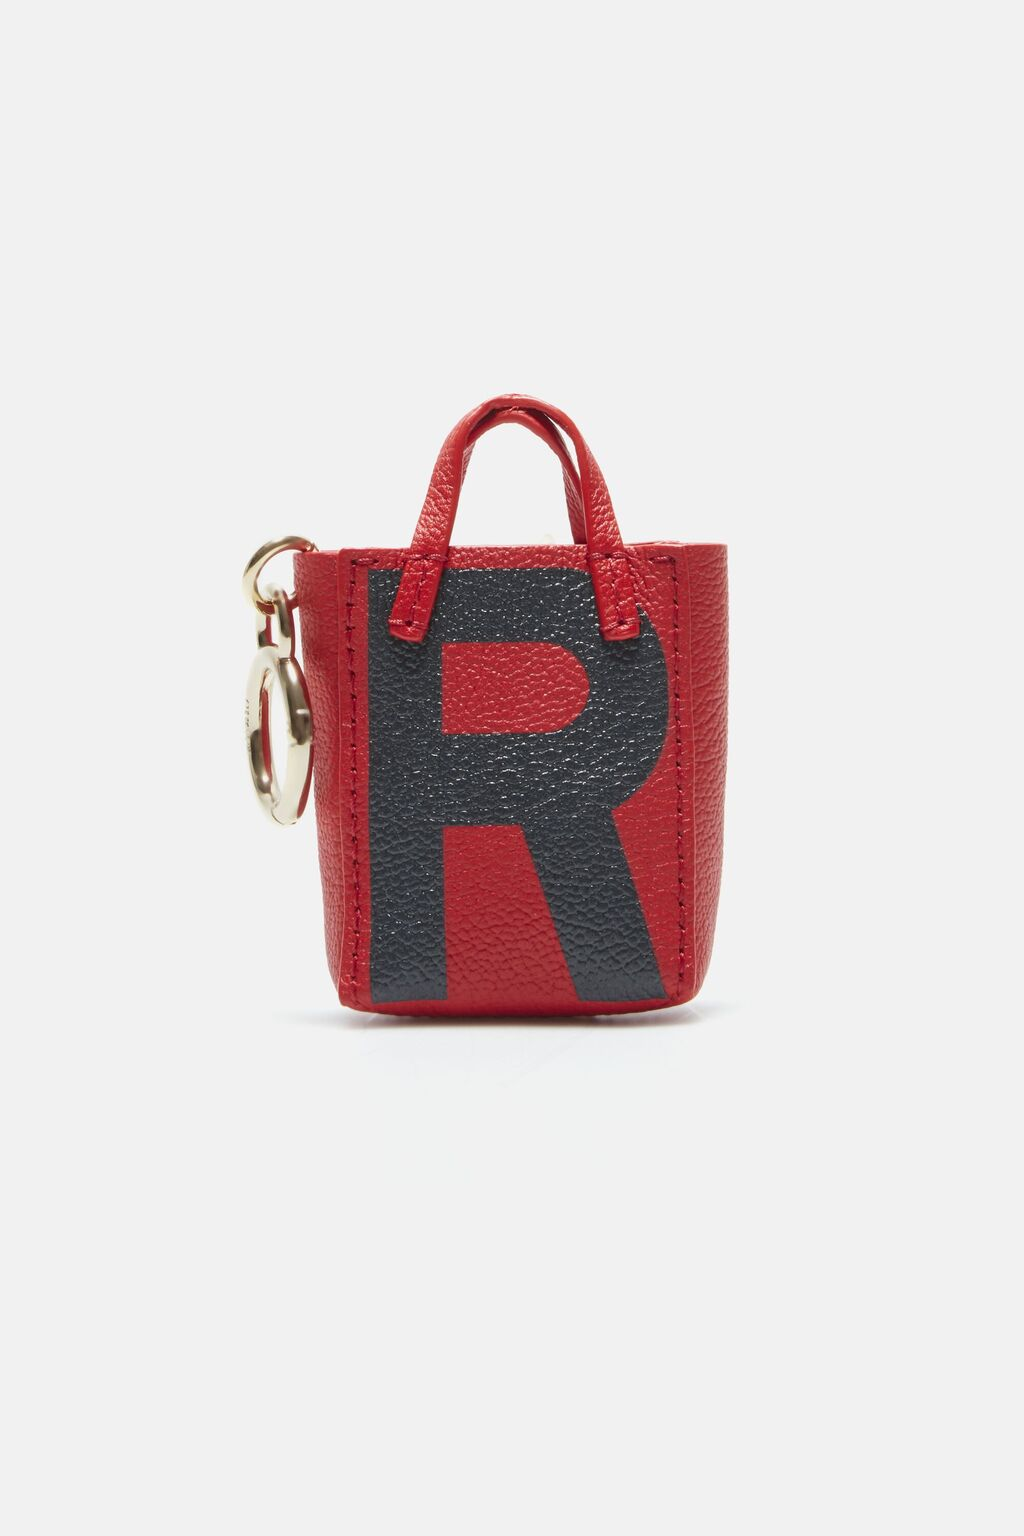 Letter R tote bag charm